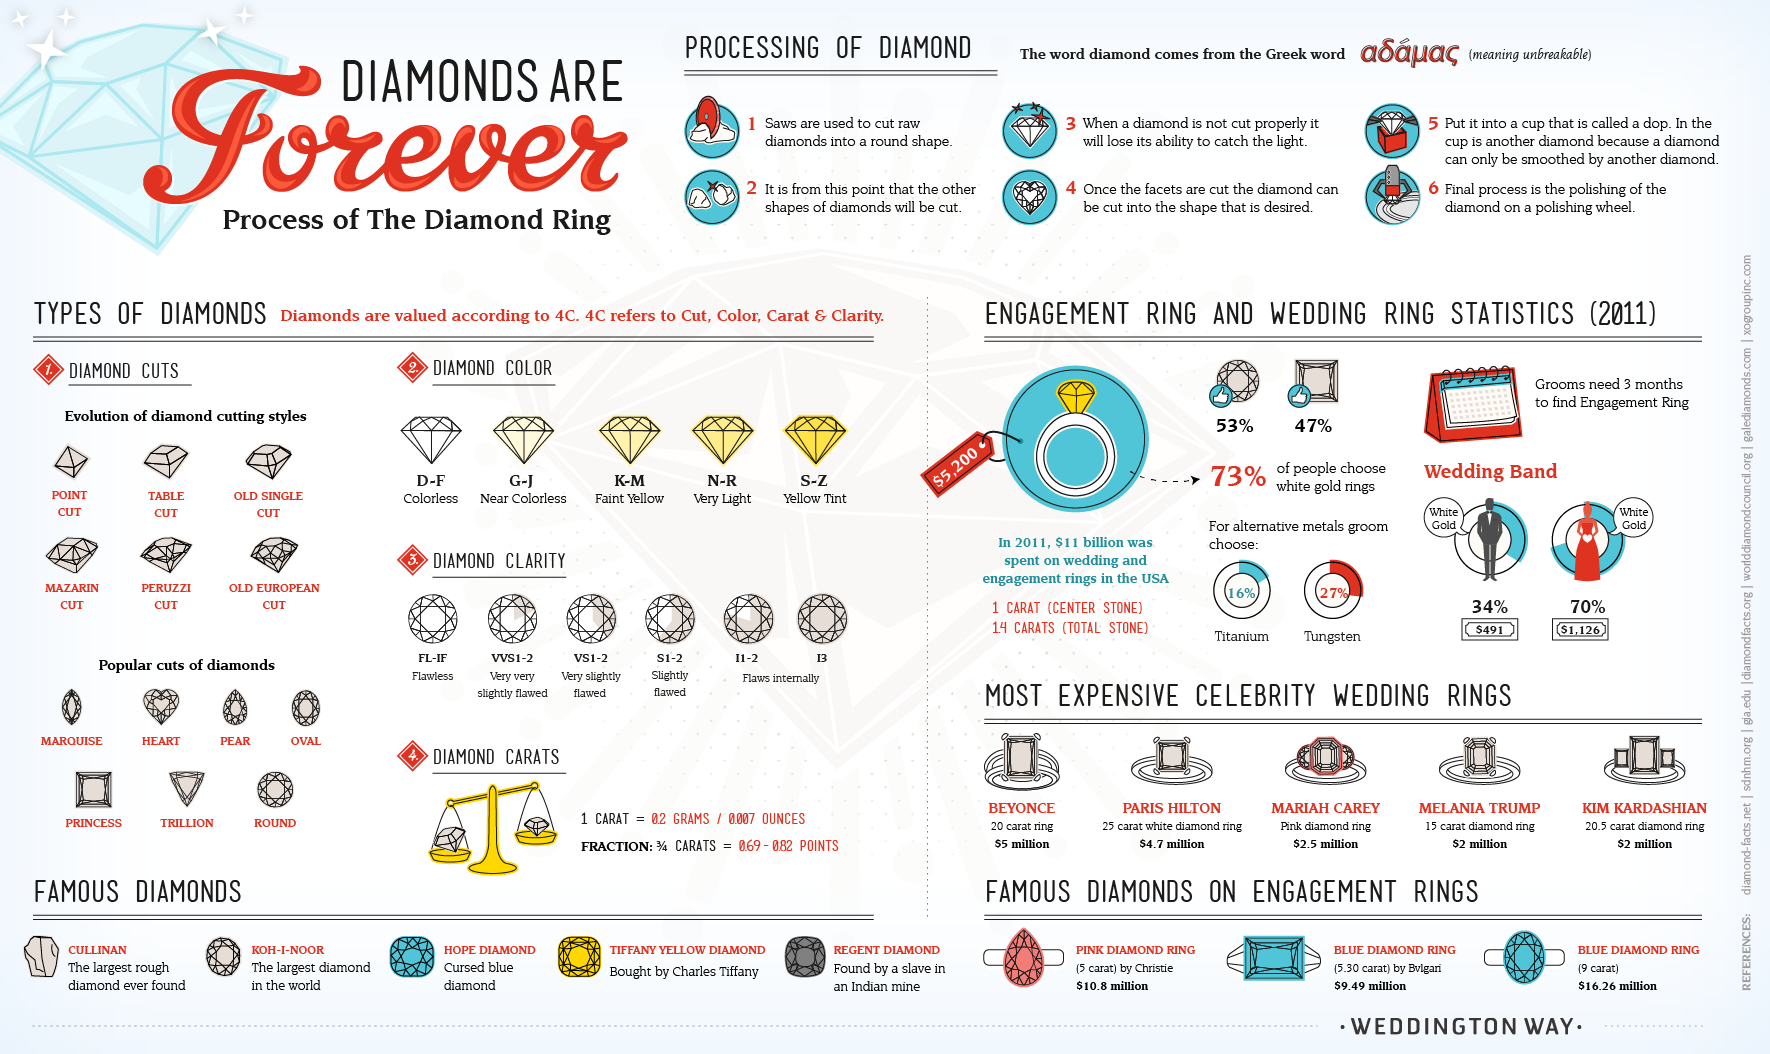 Diamonds Are Forever: Process of a Diamond Ring [Infographic]